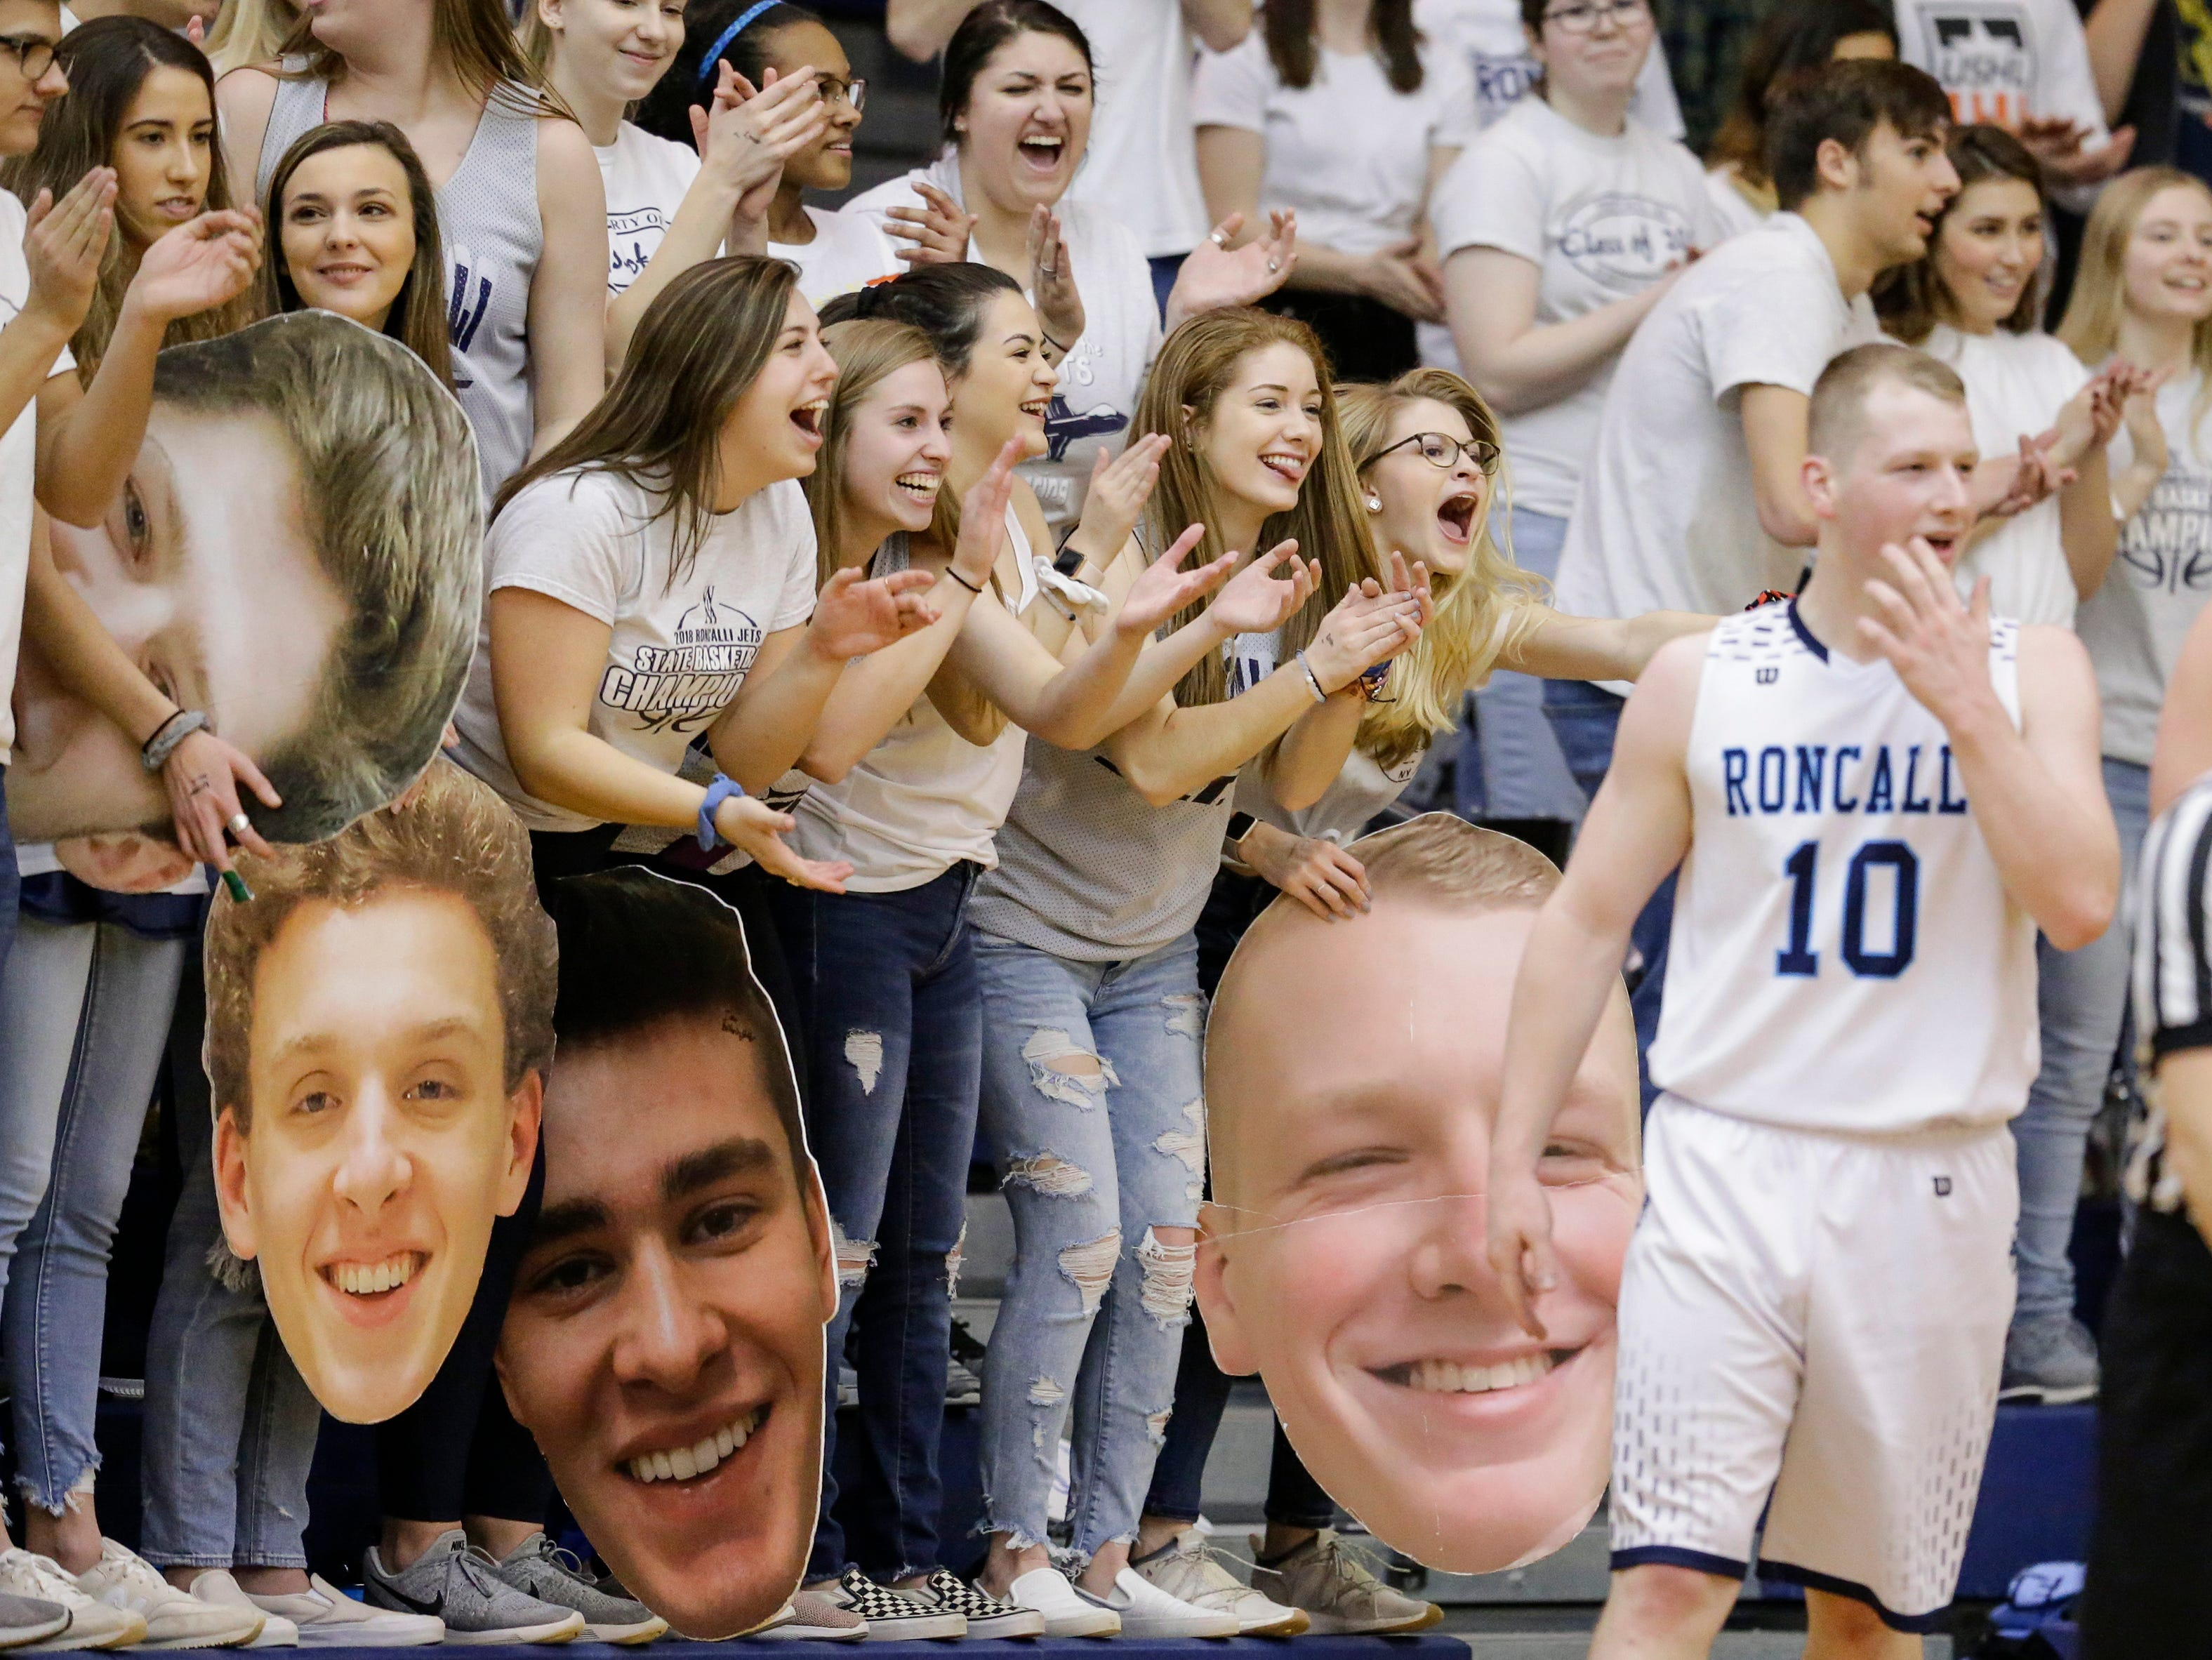 The Roncalli student sections cheers as the Jets widen their lead against Milwaukee Academy of Science during a WIAA Division 4 sectional championship at Sheboygan North High School Saturday, March 9, 2019, in Sheboygan, Wis. Joshua Clark/USA TODAY NETWORK-Wisconsin